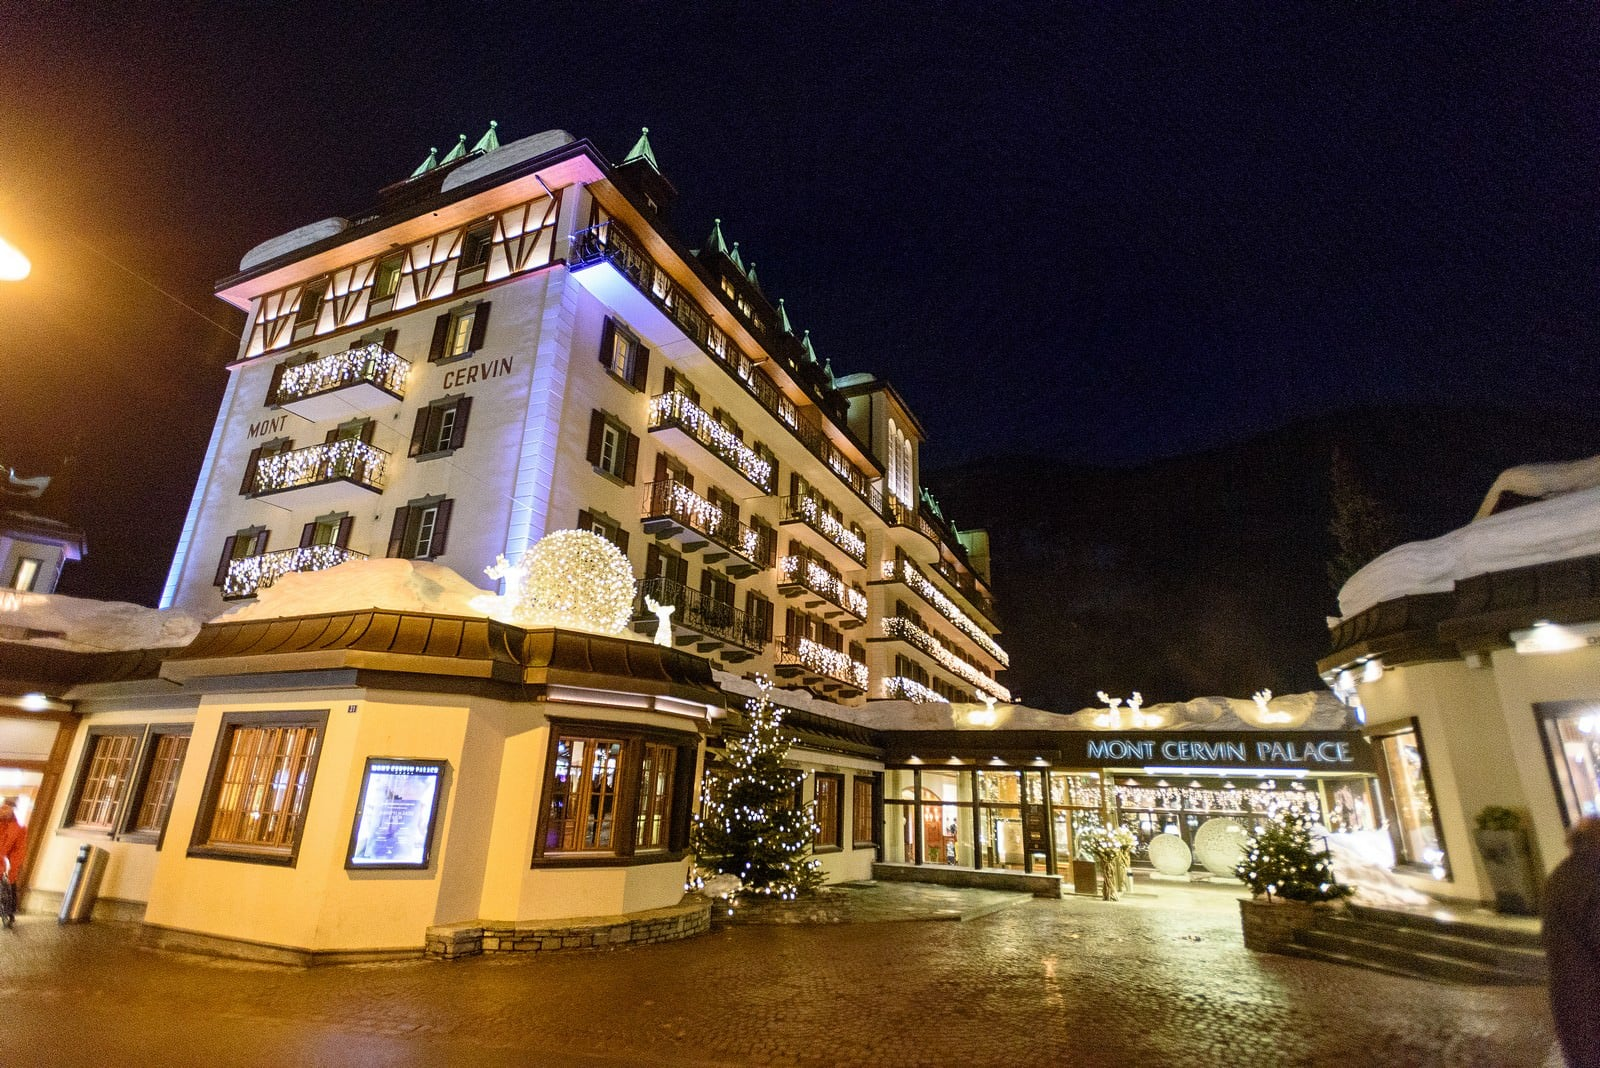 wedding at Hotel Mont Cervin Palace in Zermatt 4